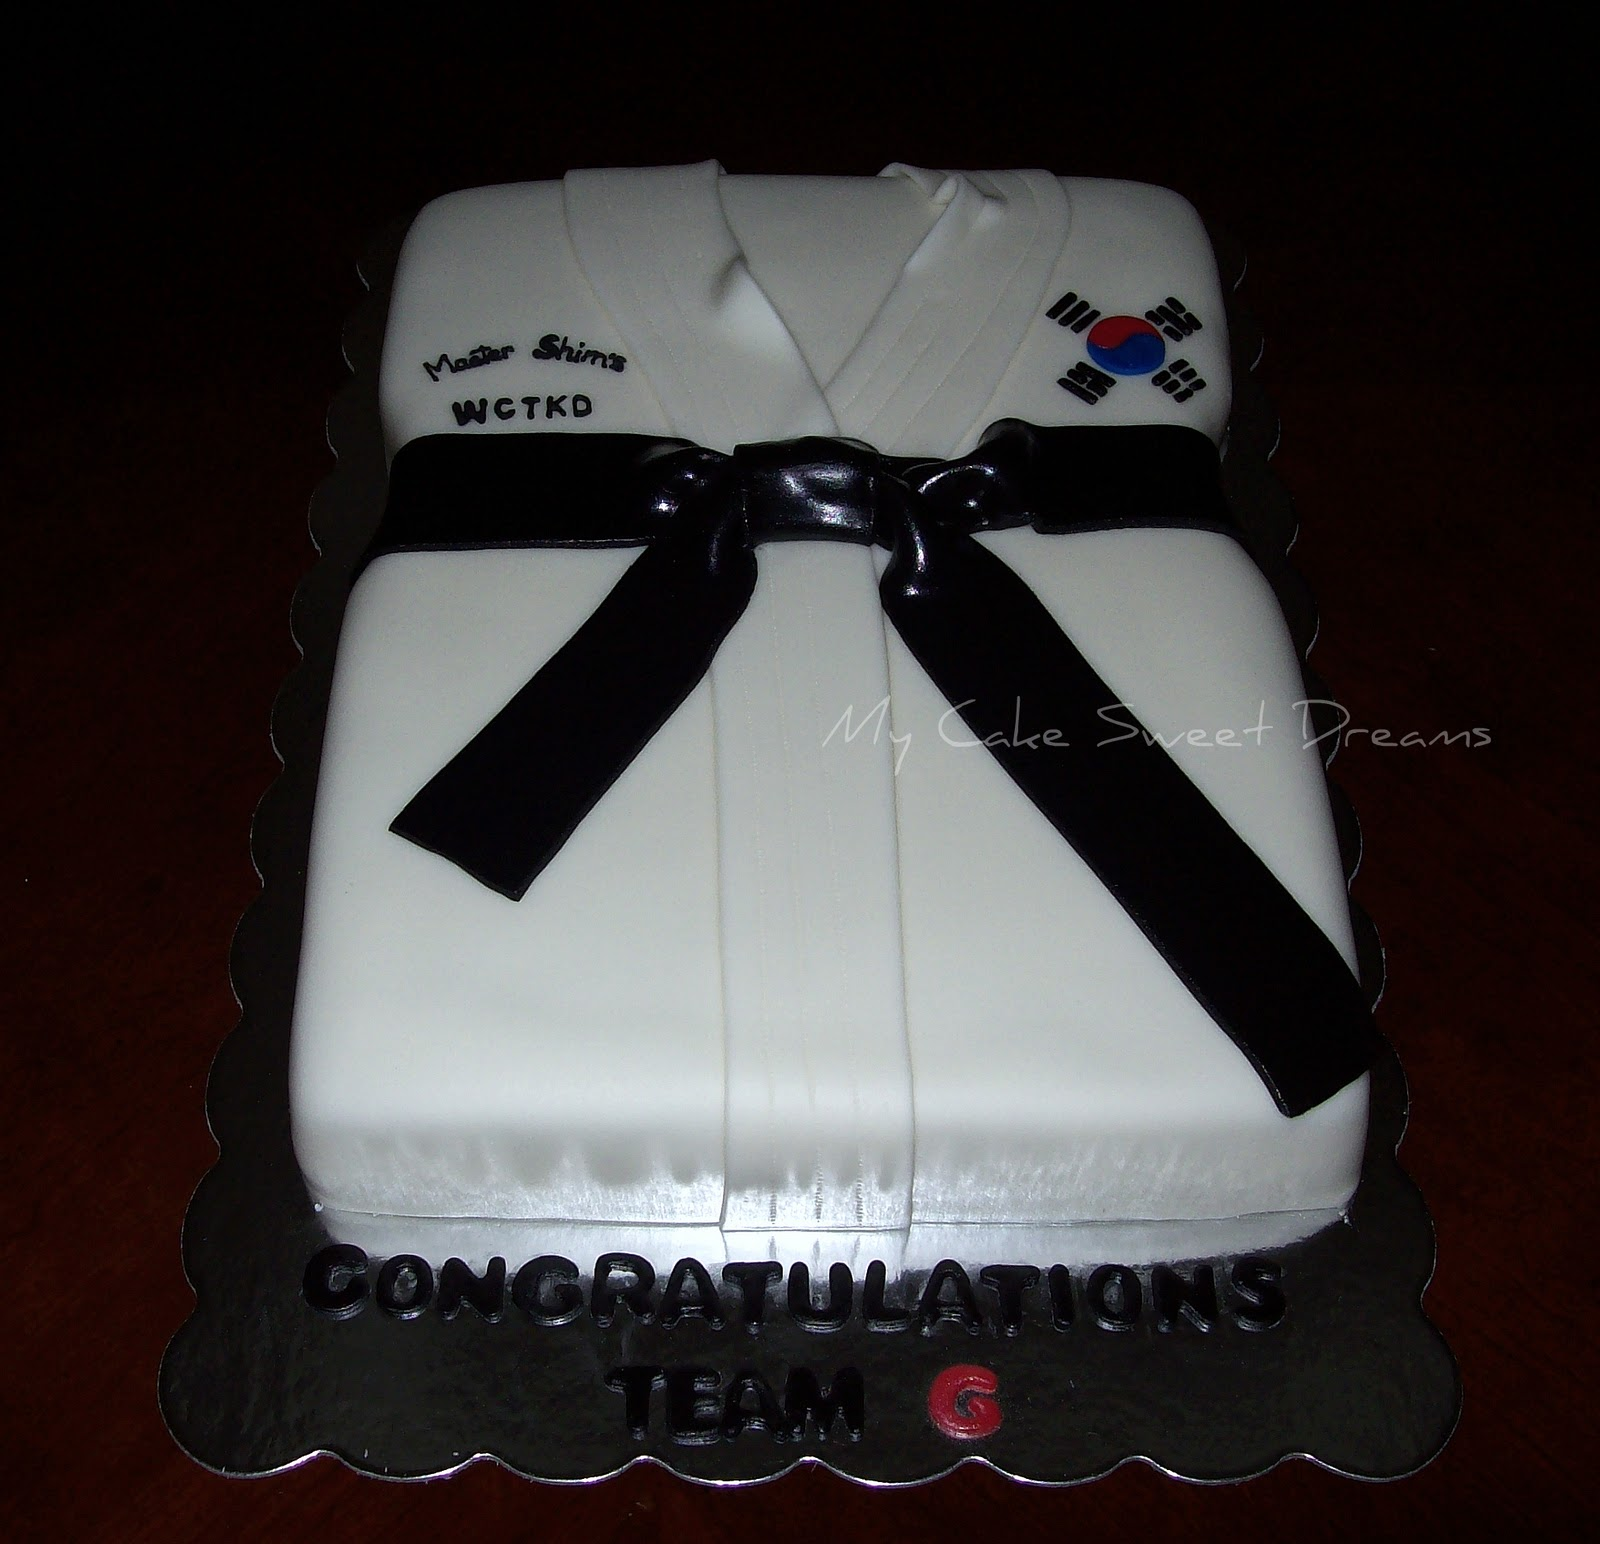 My Cake Sweet Dreams Tae Kwon Do Cake